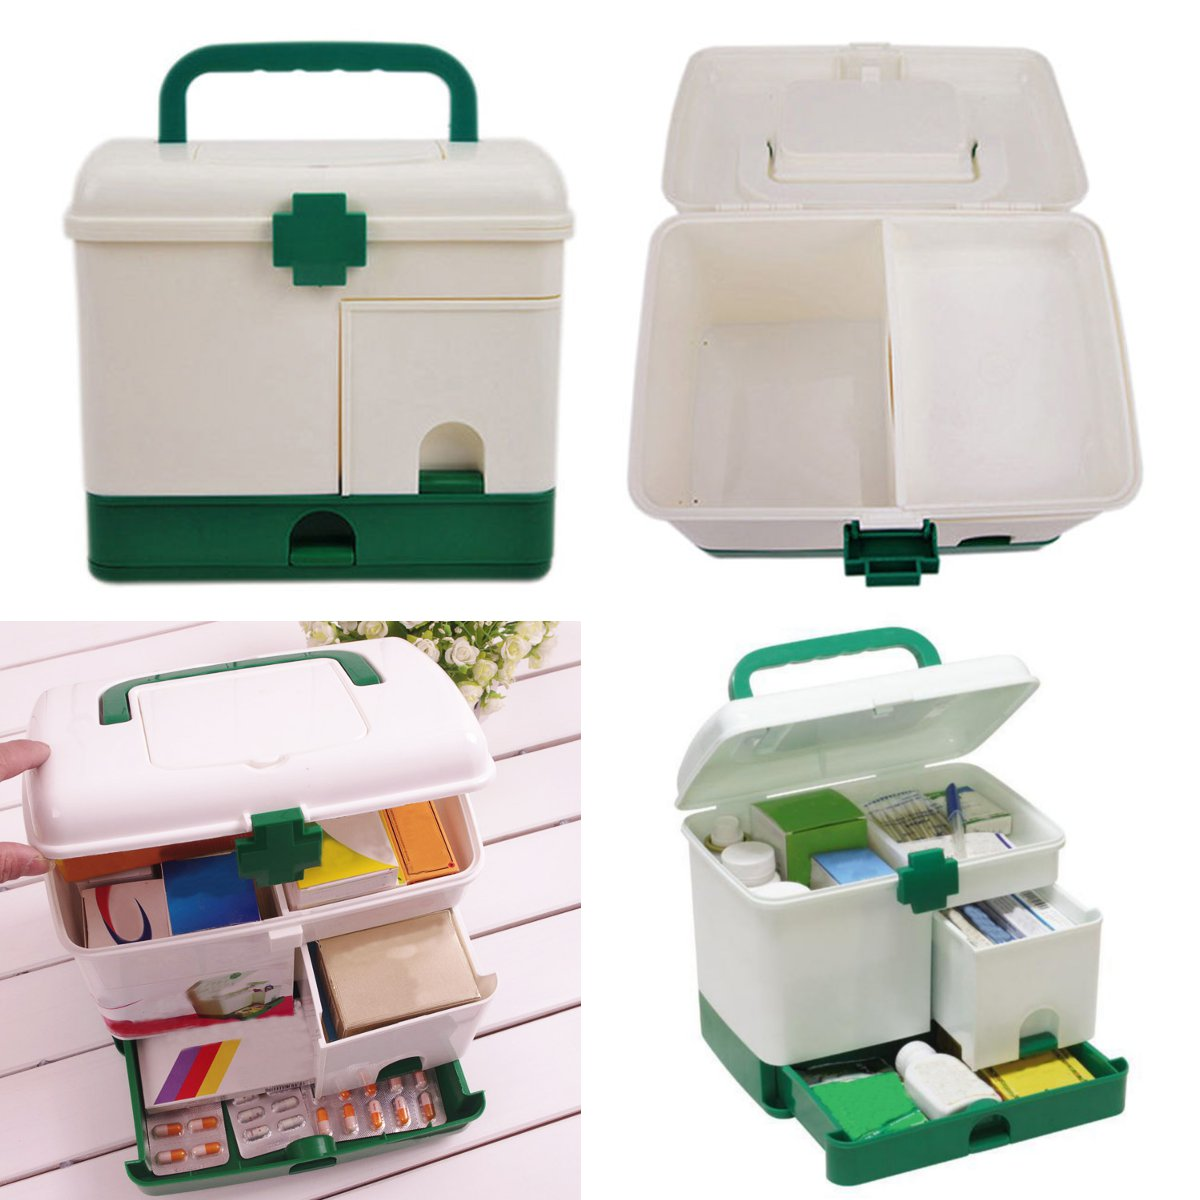 Large Capacity Household Portable 3 Layer Medicine Drawer Health Storage Box First Aid Kit Case Bin Organizer